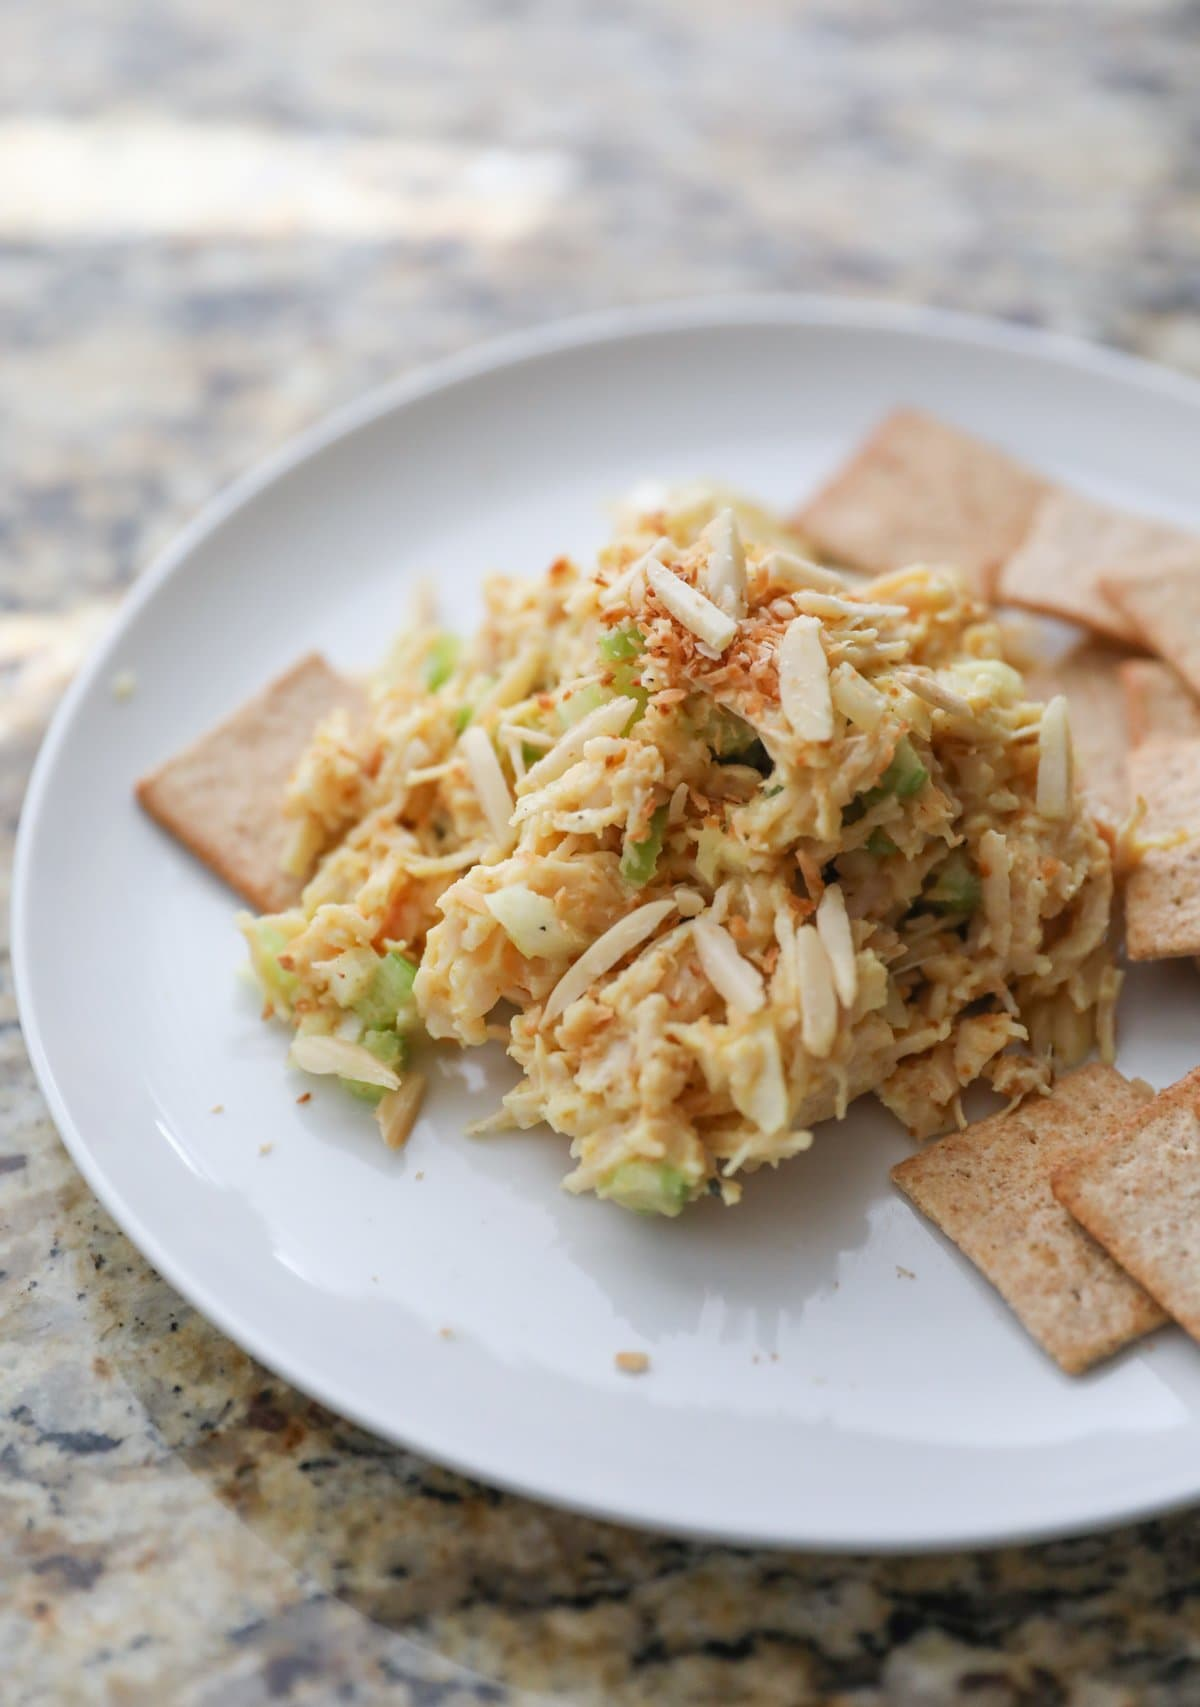 curry chicken salad with crackers on a white plate